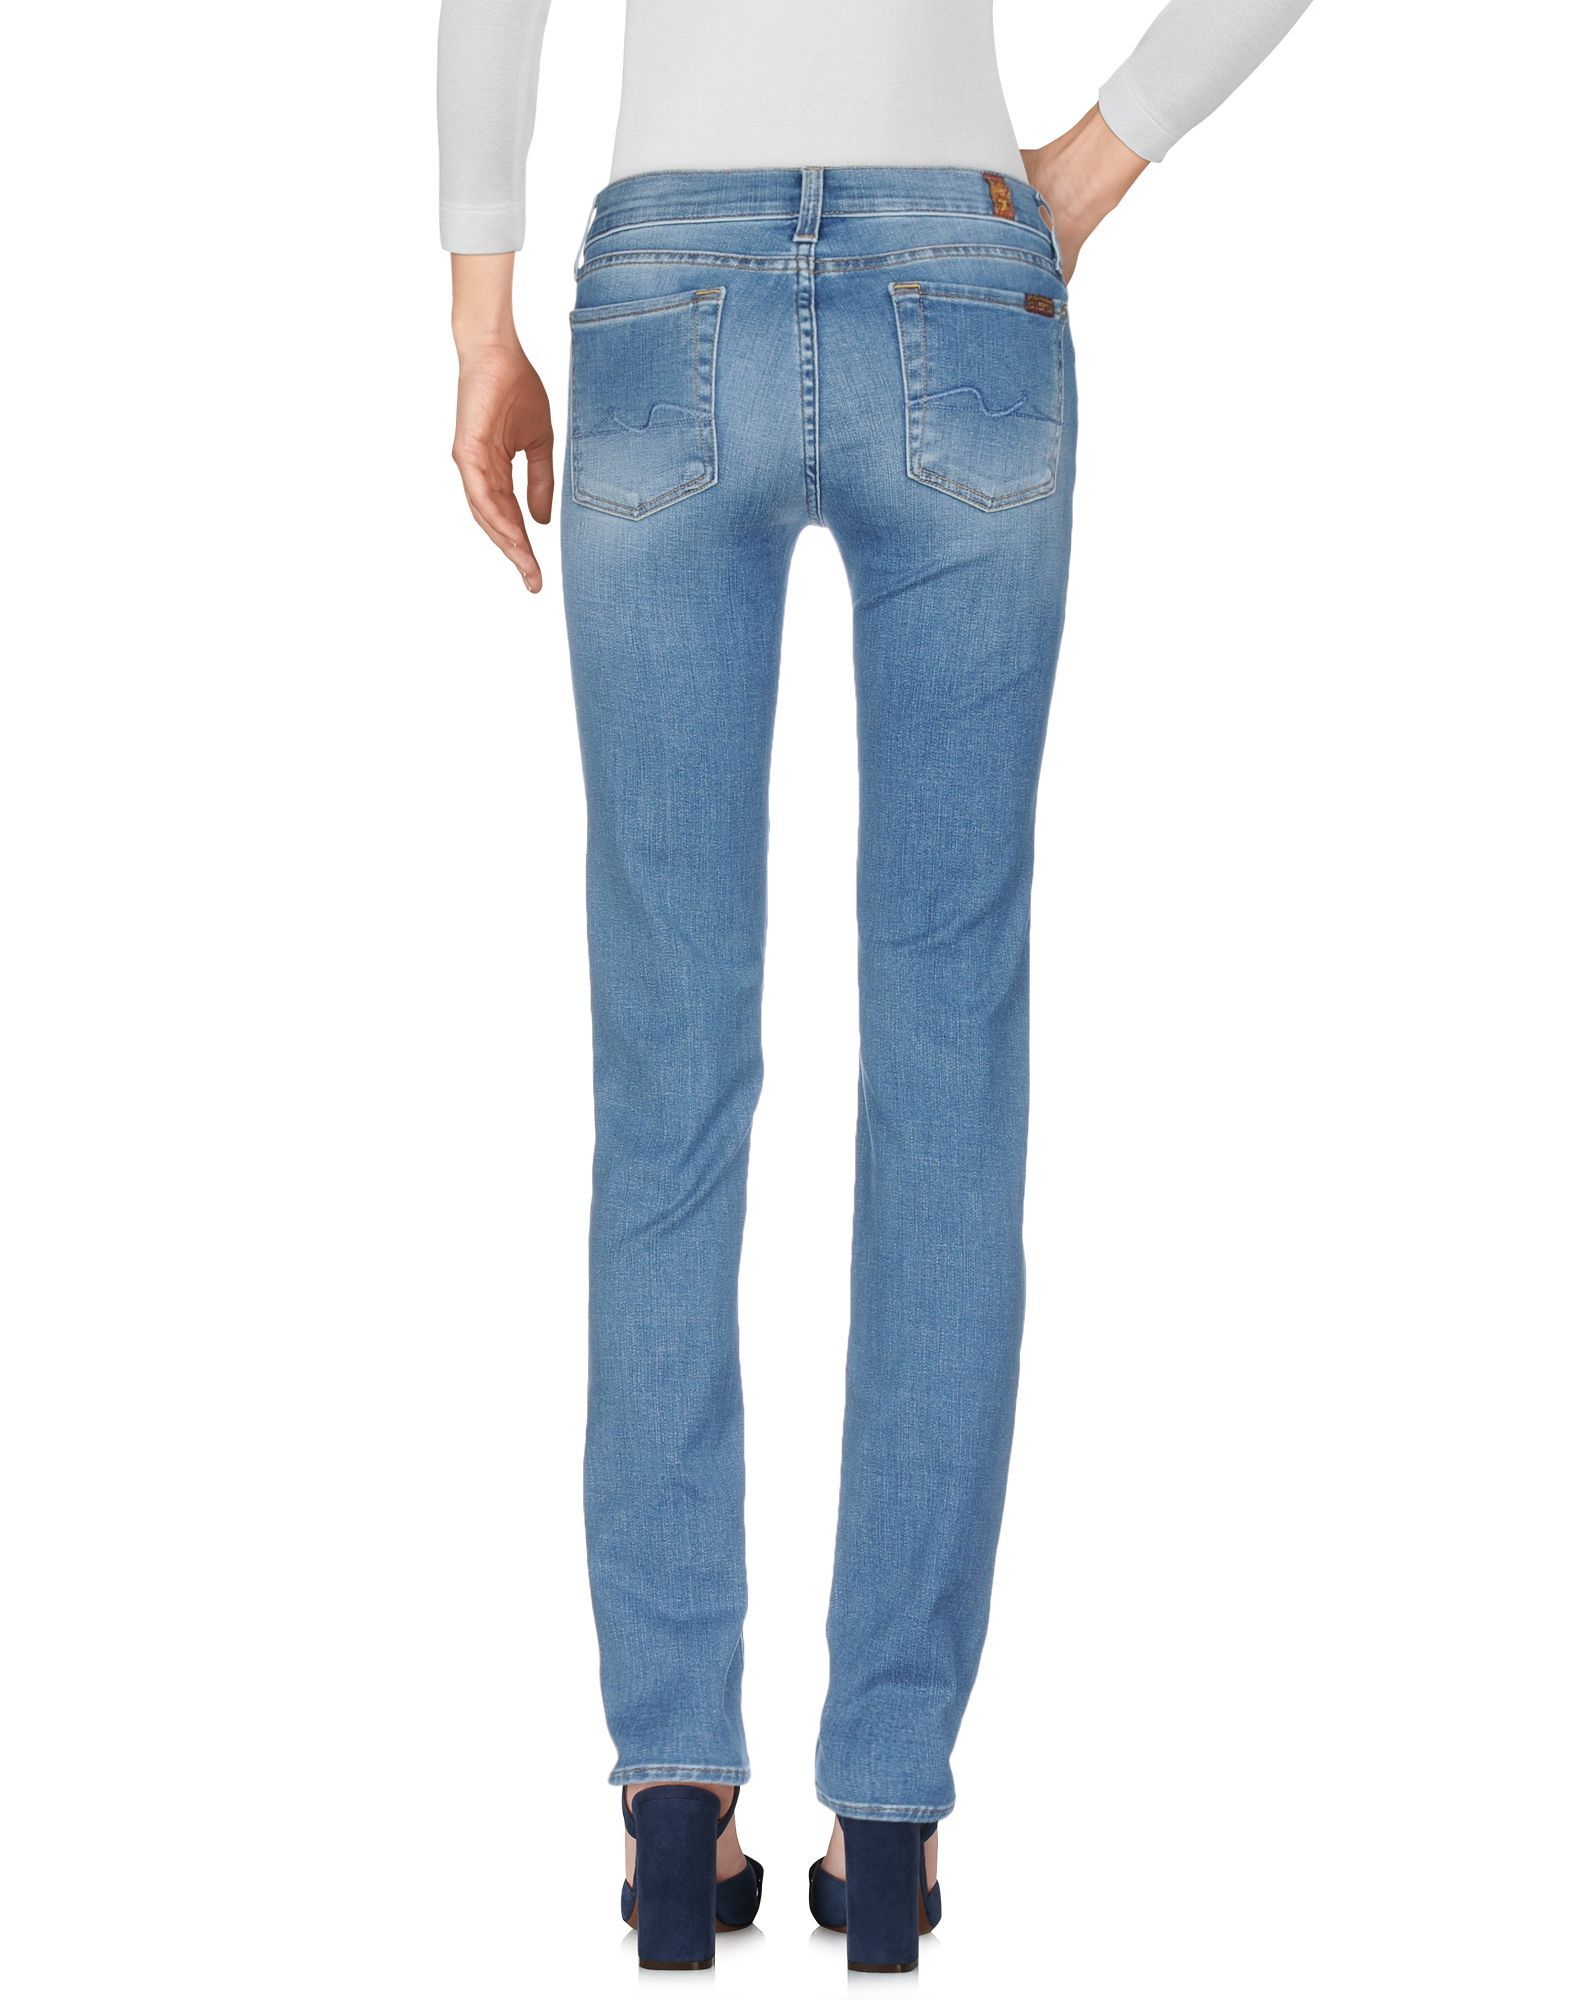 7 For All Mankind Blue Cotton Jeans